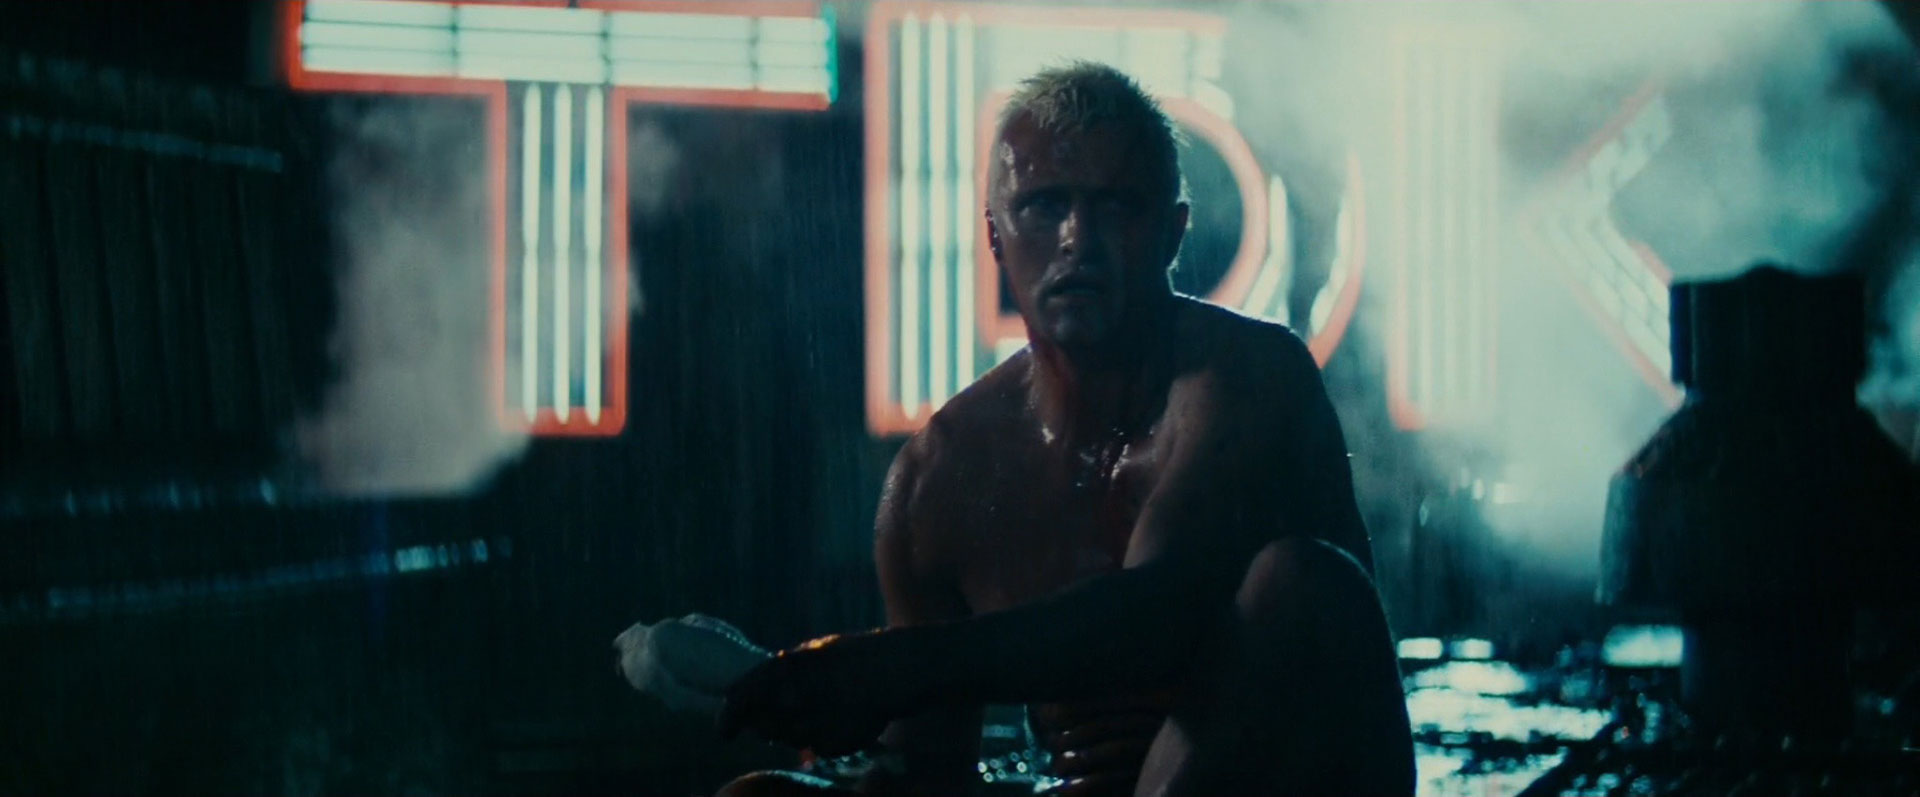 bladerunner analytical essay Blade runner by scott bukatman – review by pd smith pd smith tue 28 aug 2012 0730 edt first published on tue 28 aug 2012 0730 edt share on.